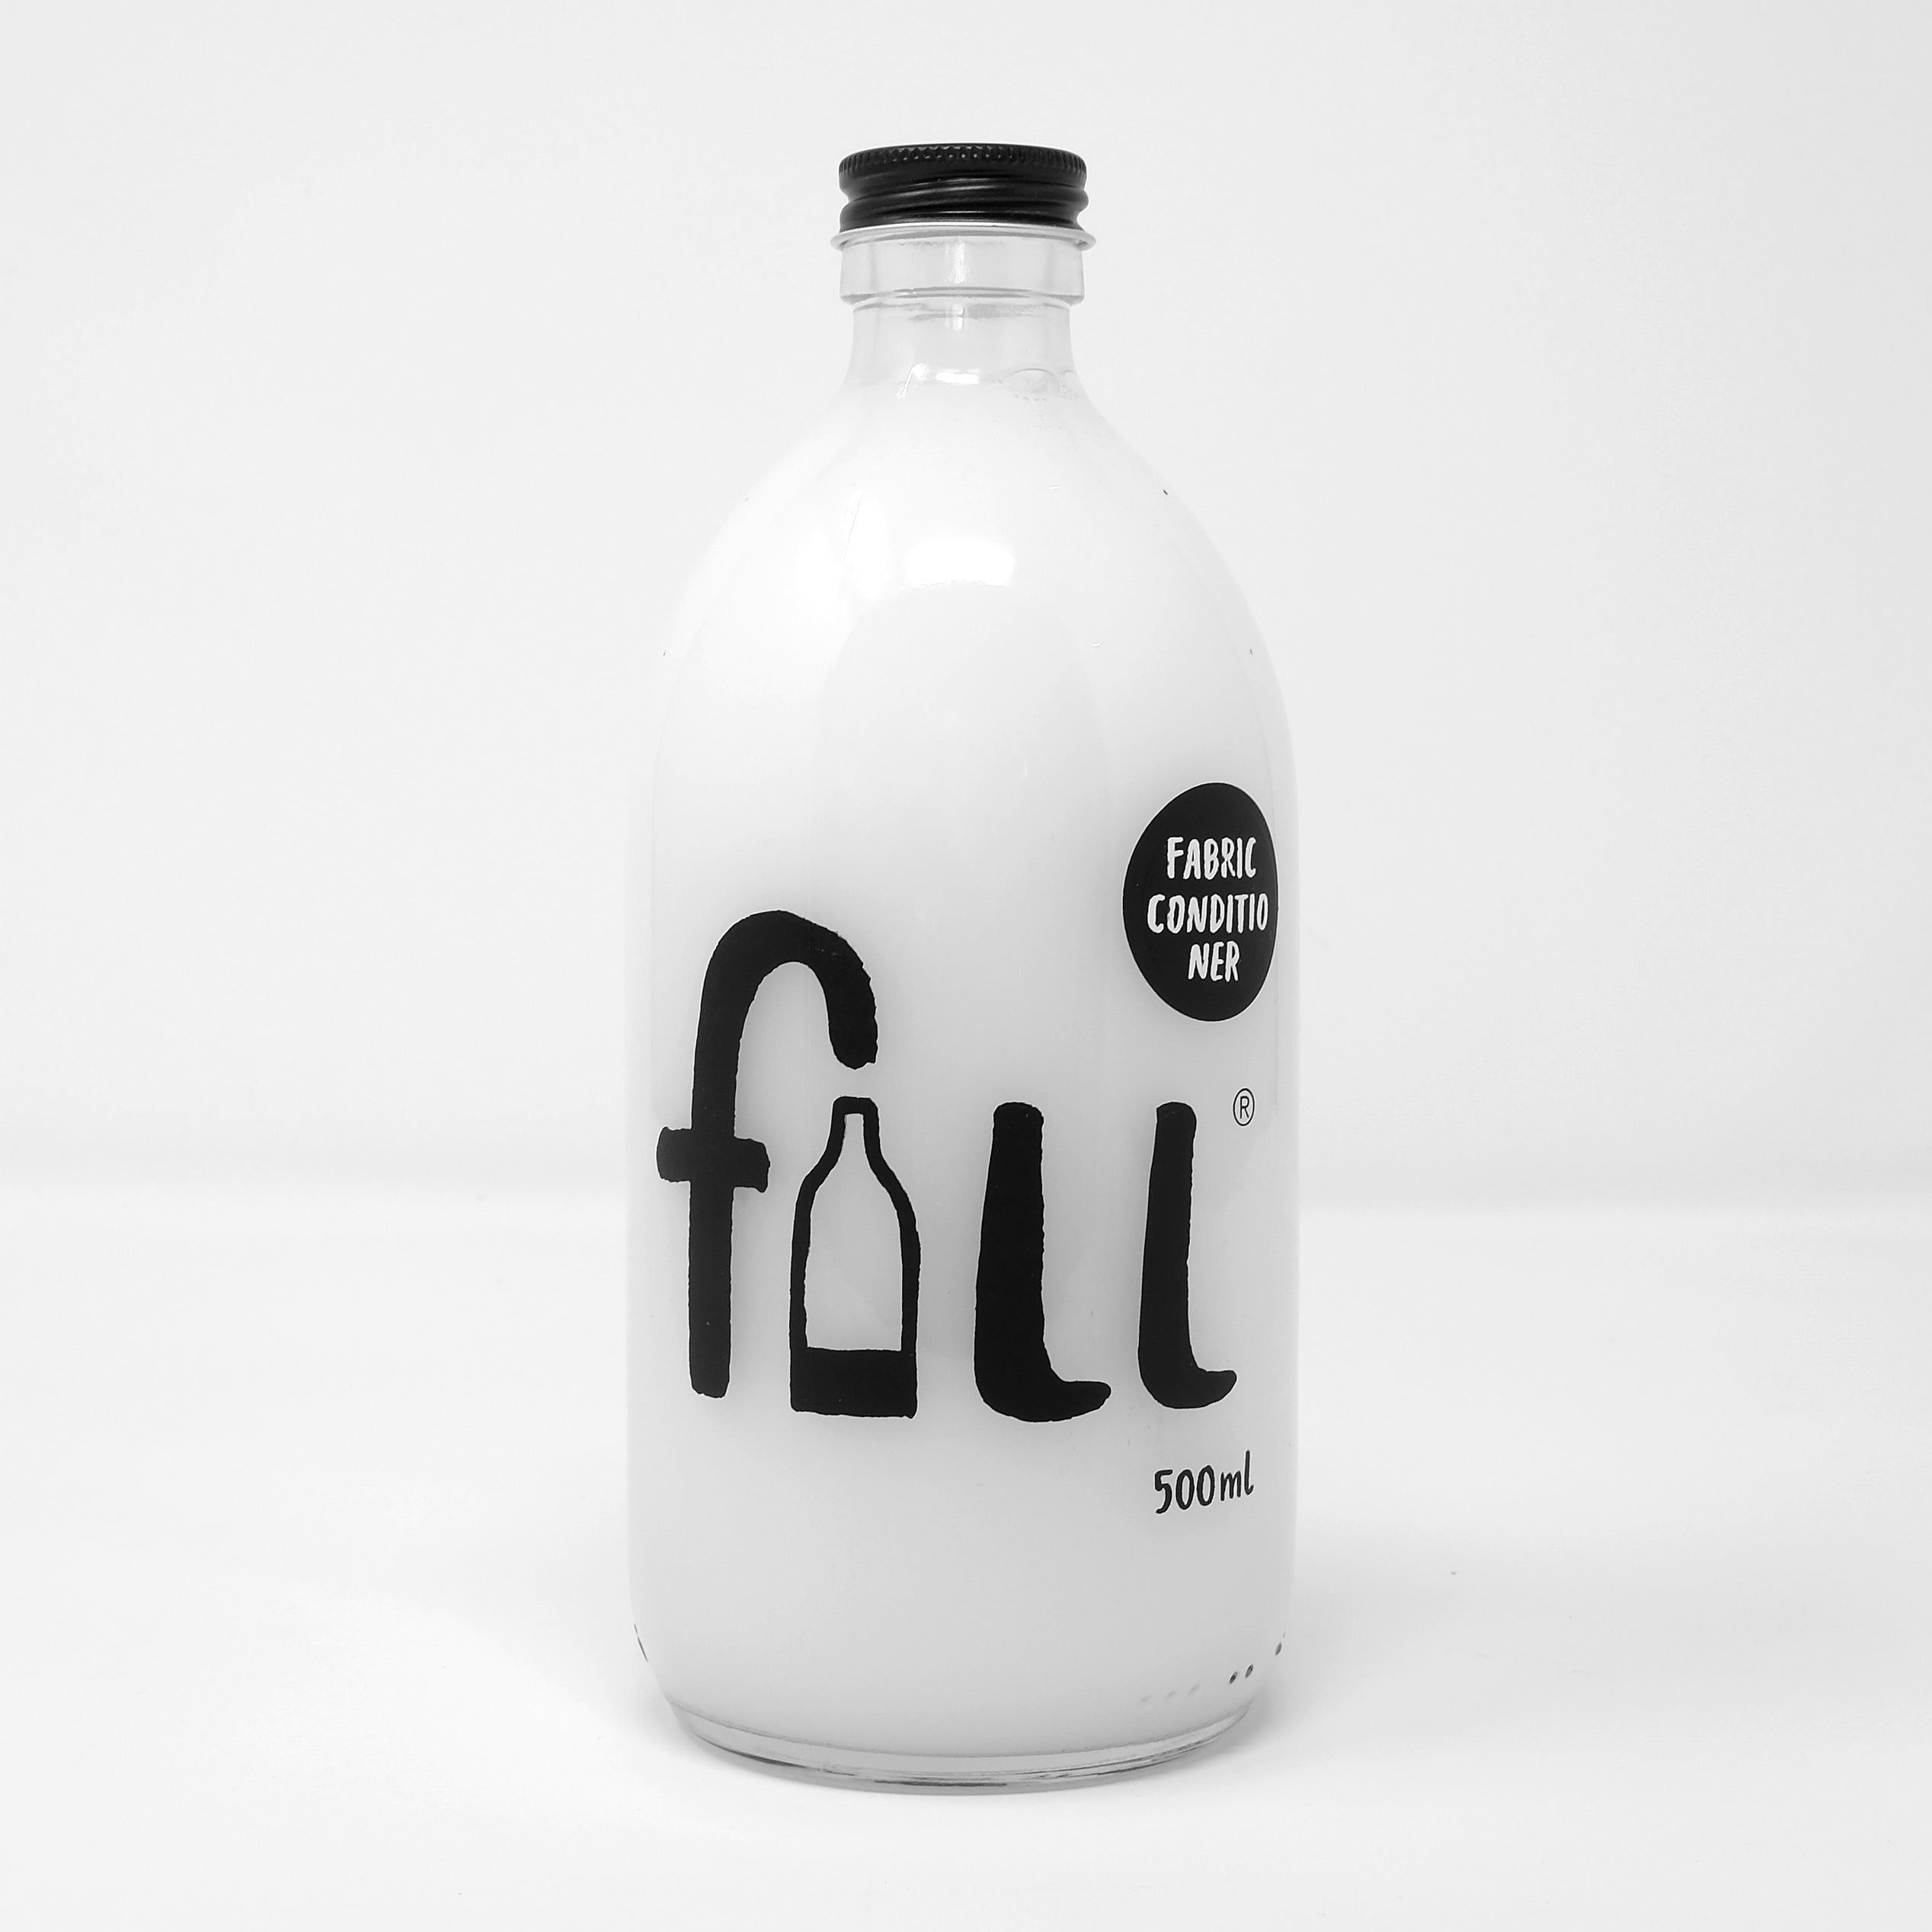 fill-fabric-conditioner-neroli-500ml-image